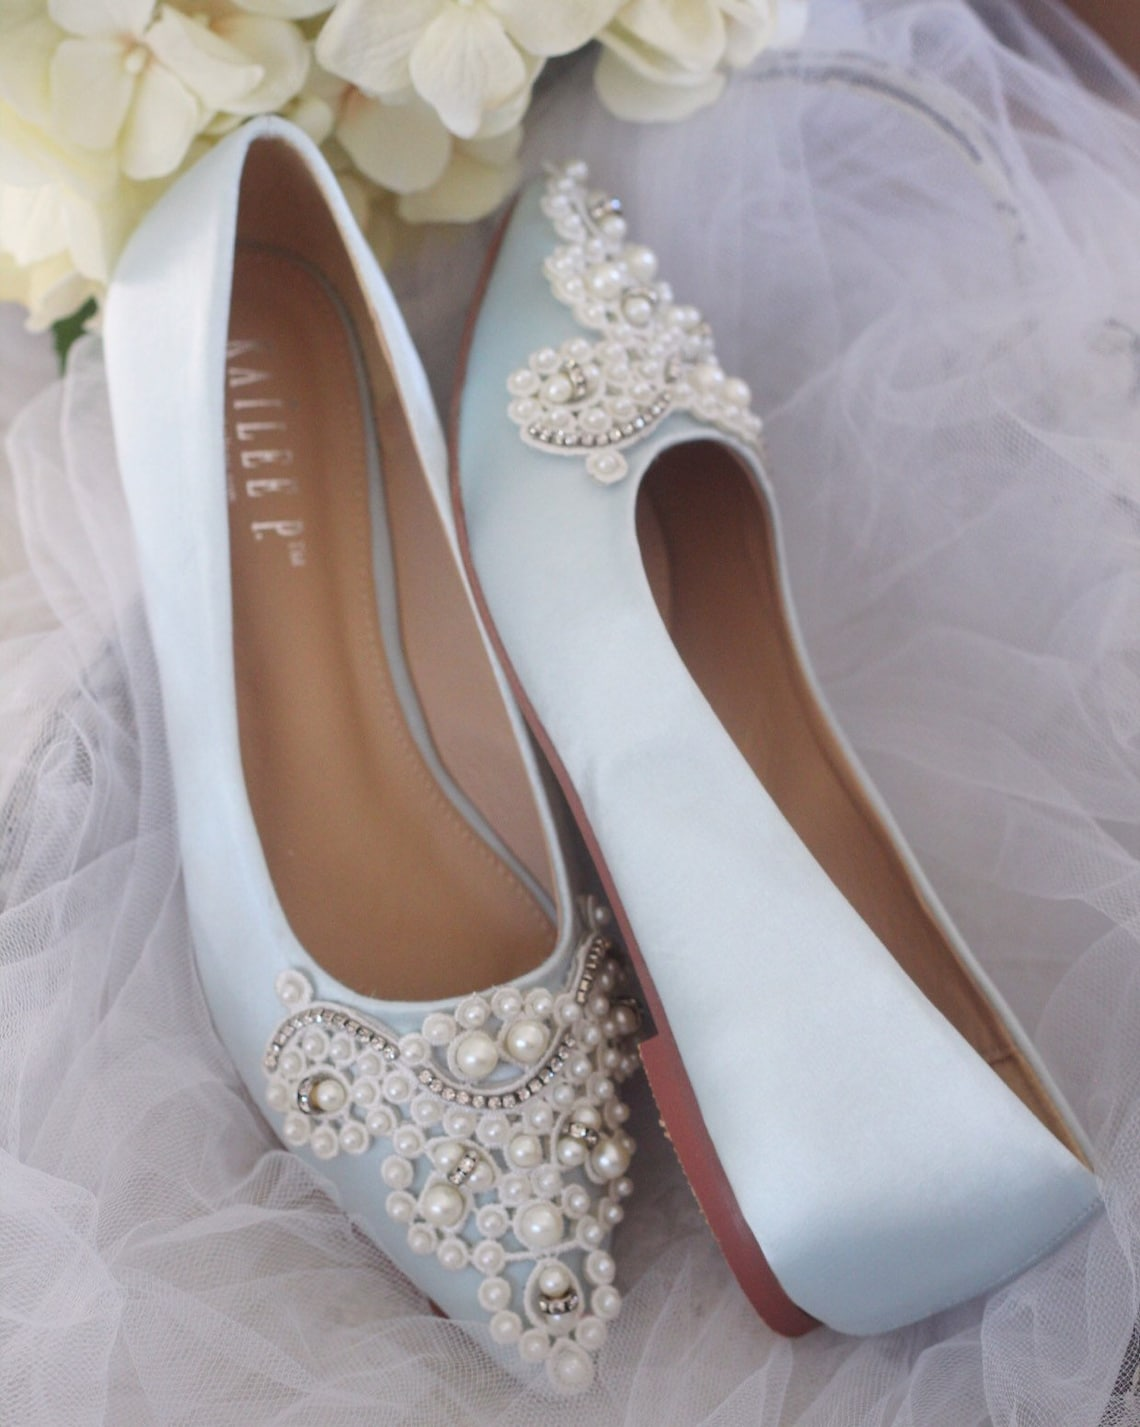 Light Blue Satin Pointy toe flats with OVERSIZED PEARLS APPLIQUE - Women Wedding Shoes, Bridesmaid Shoes, Something Blue